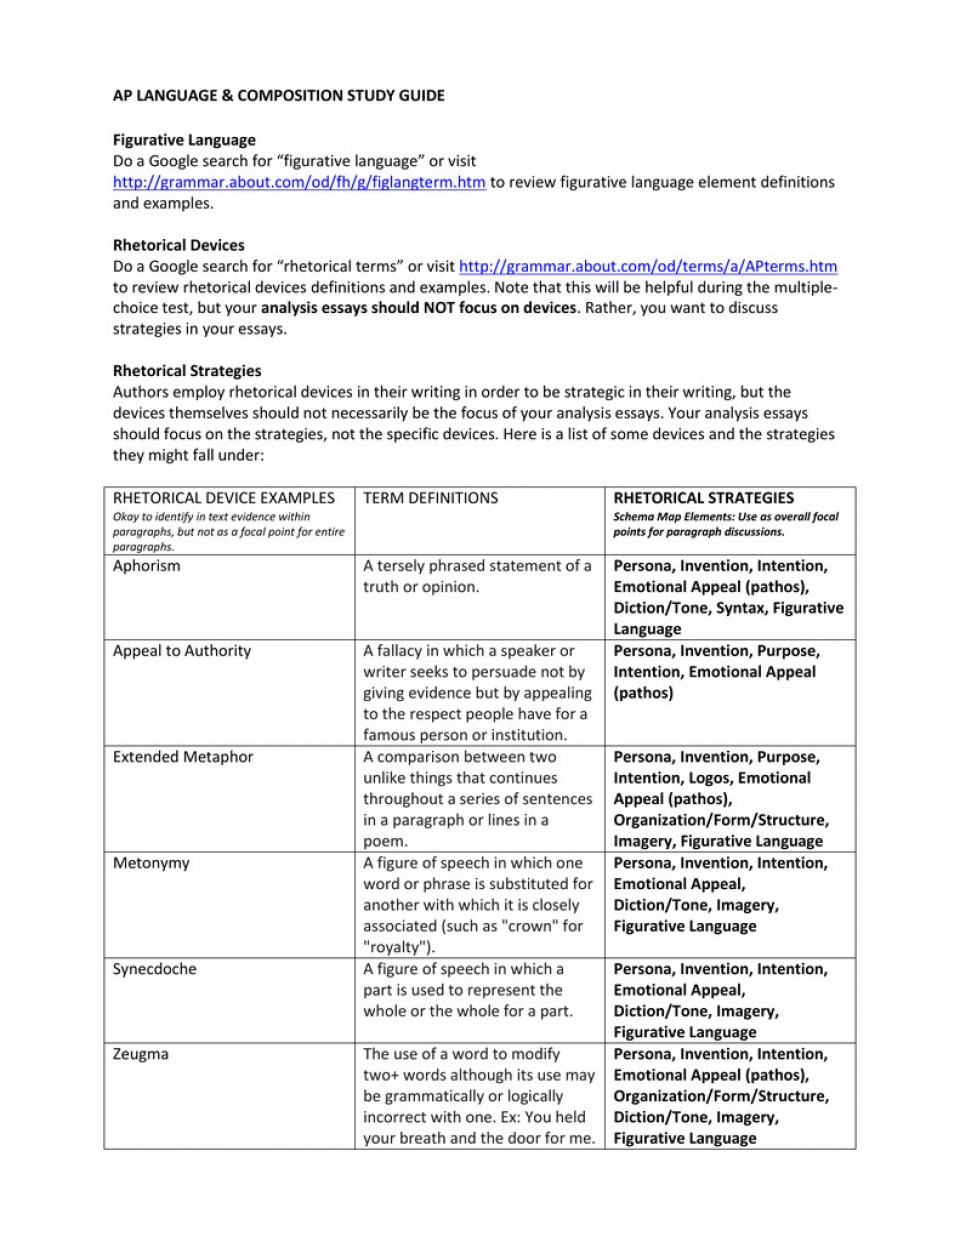 Gravity research foundation essay competition 2012